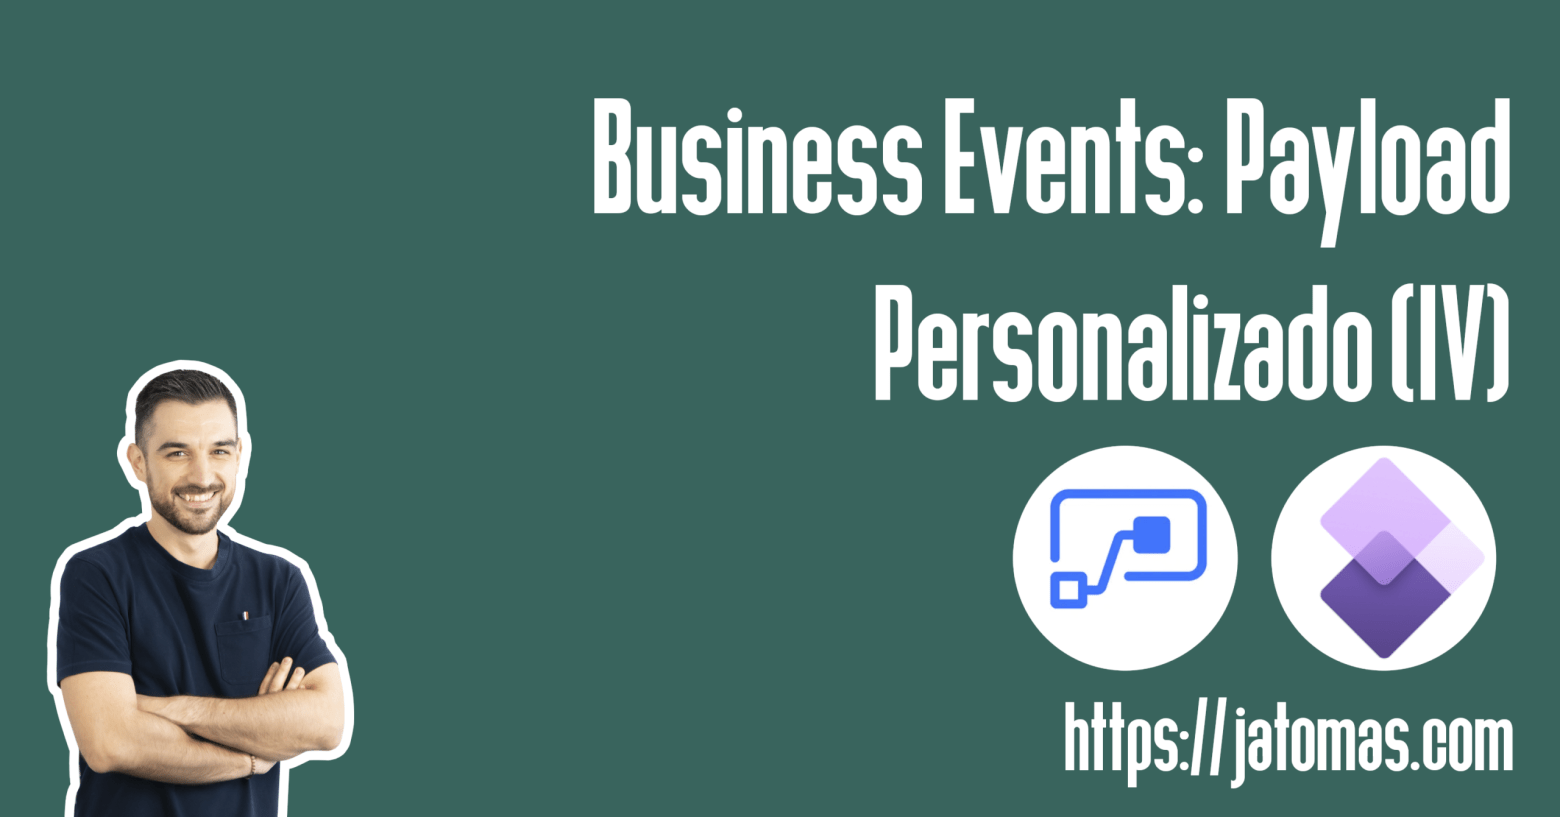 Business Events - Payload Personalizado (IV)